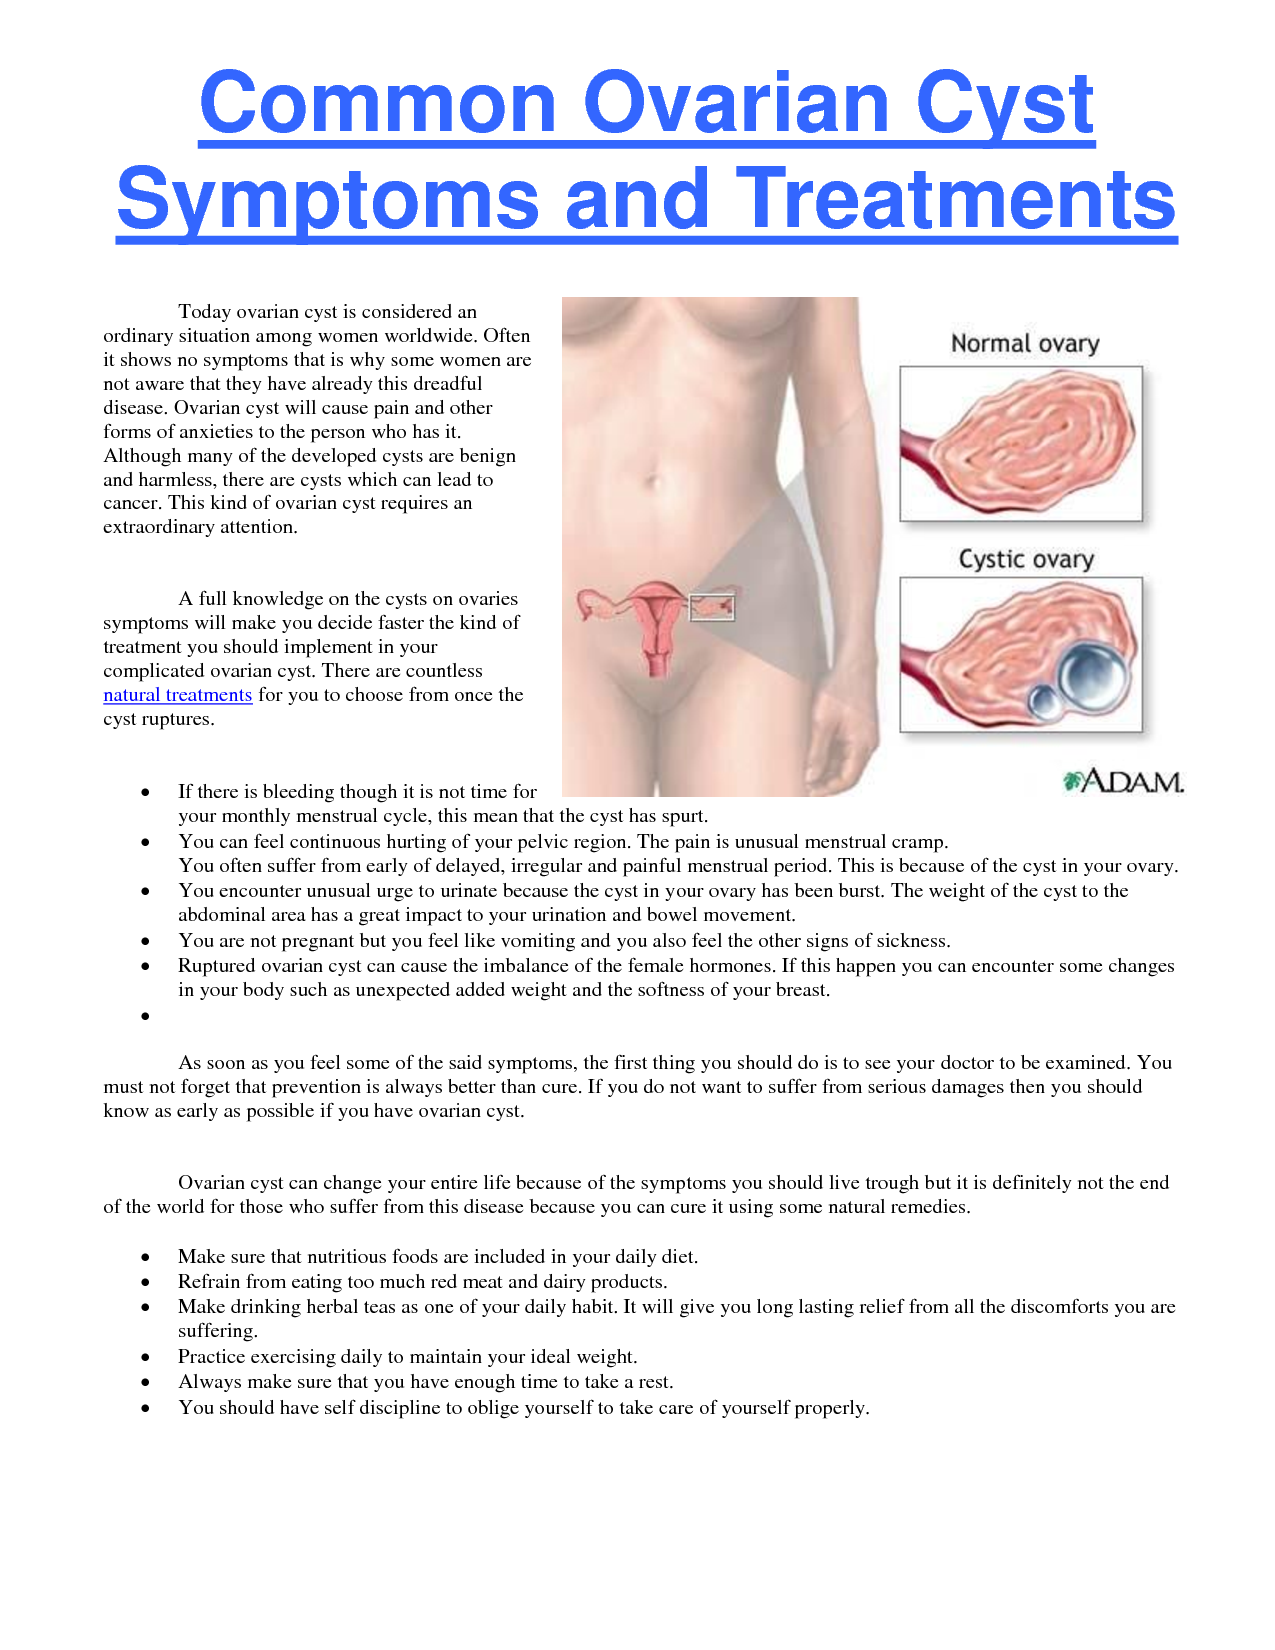 Signs And Symptoms Common Ovarian Cyst Symptoms And Treatments